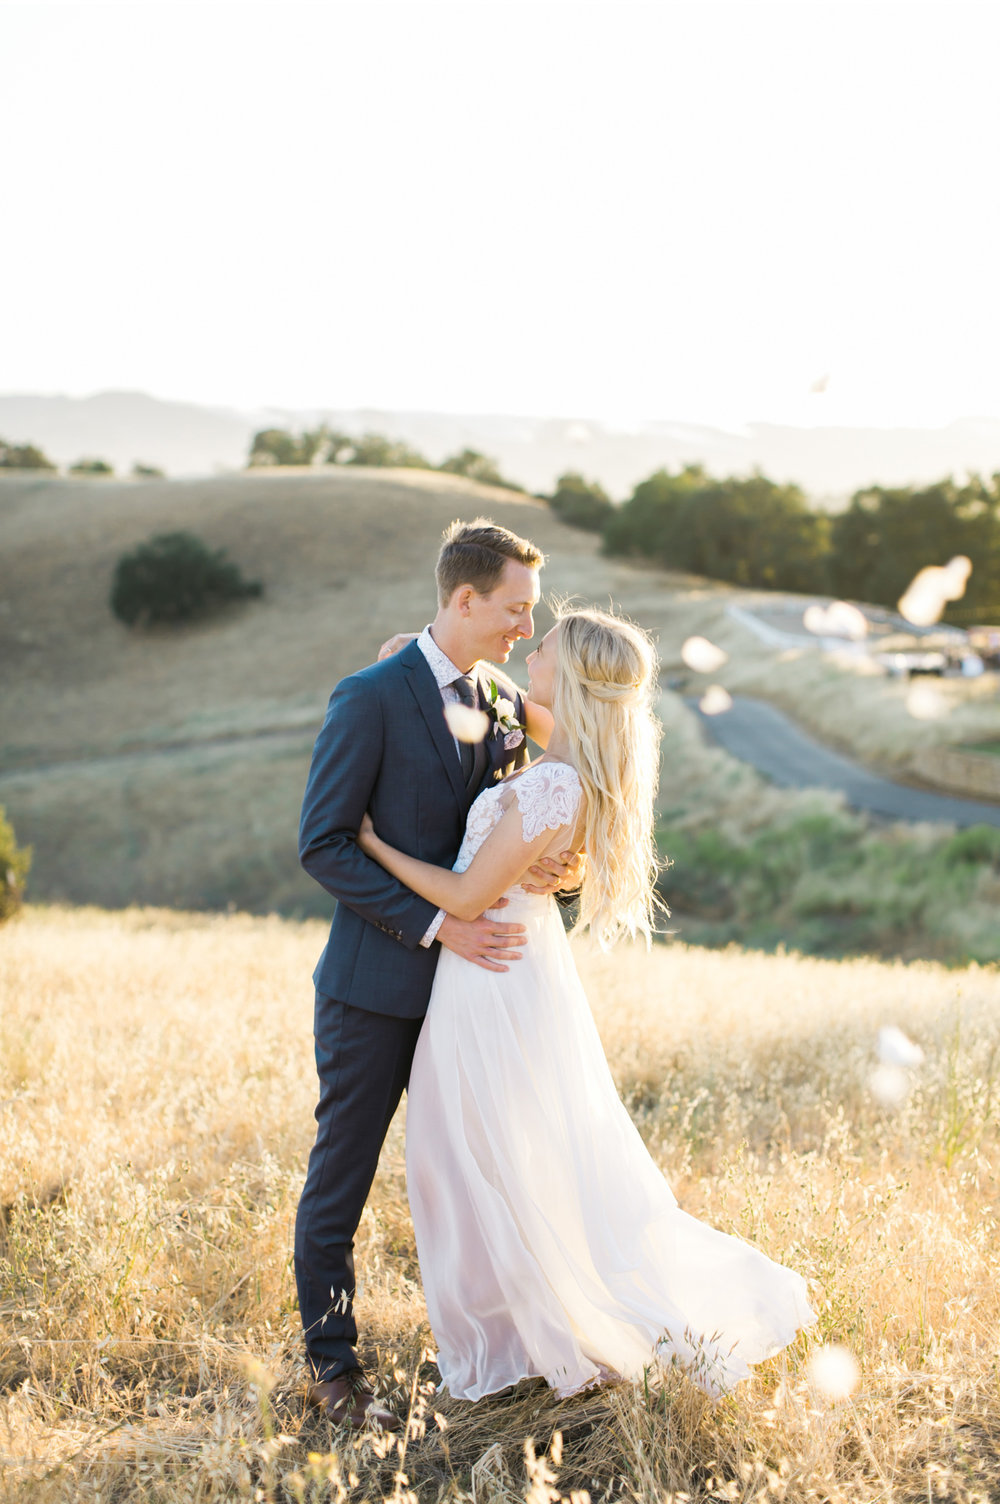 Natalie-Schutt-Photography's-Wedding-Style-Me-Pretty-Paso-Robles_01.jpg